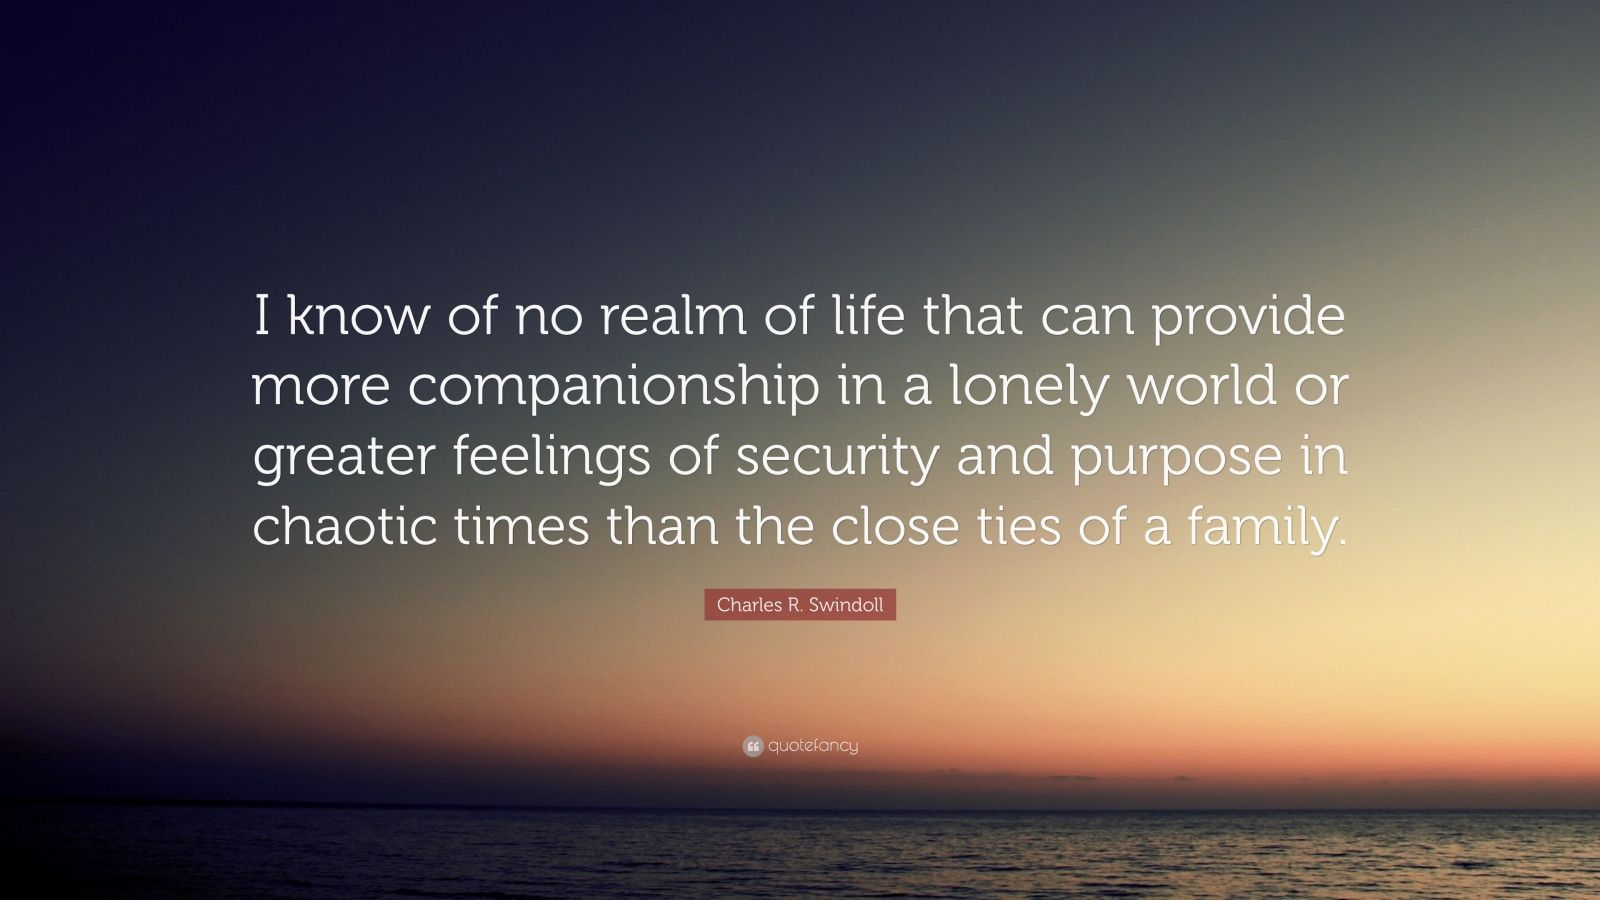 """Charles R. Swindoll Quote: """"I know of no realm of life that can provide more companionship in a lonely world or greater feelings of security and purpose in chaotic times than the close ties of a family."""""""